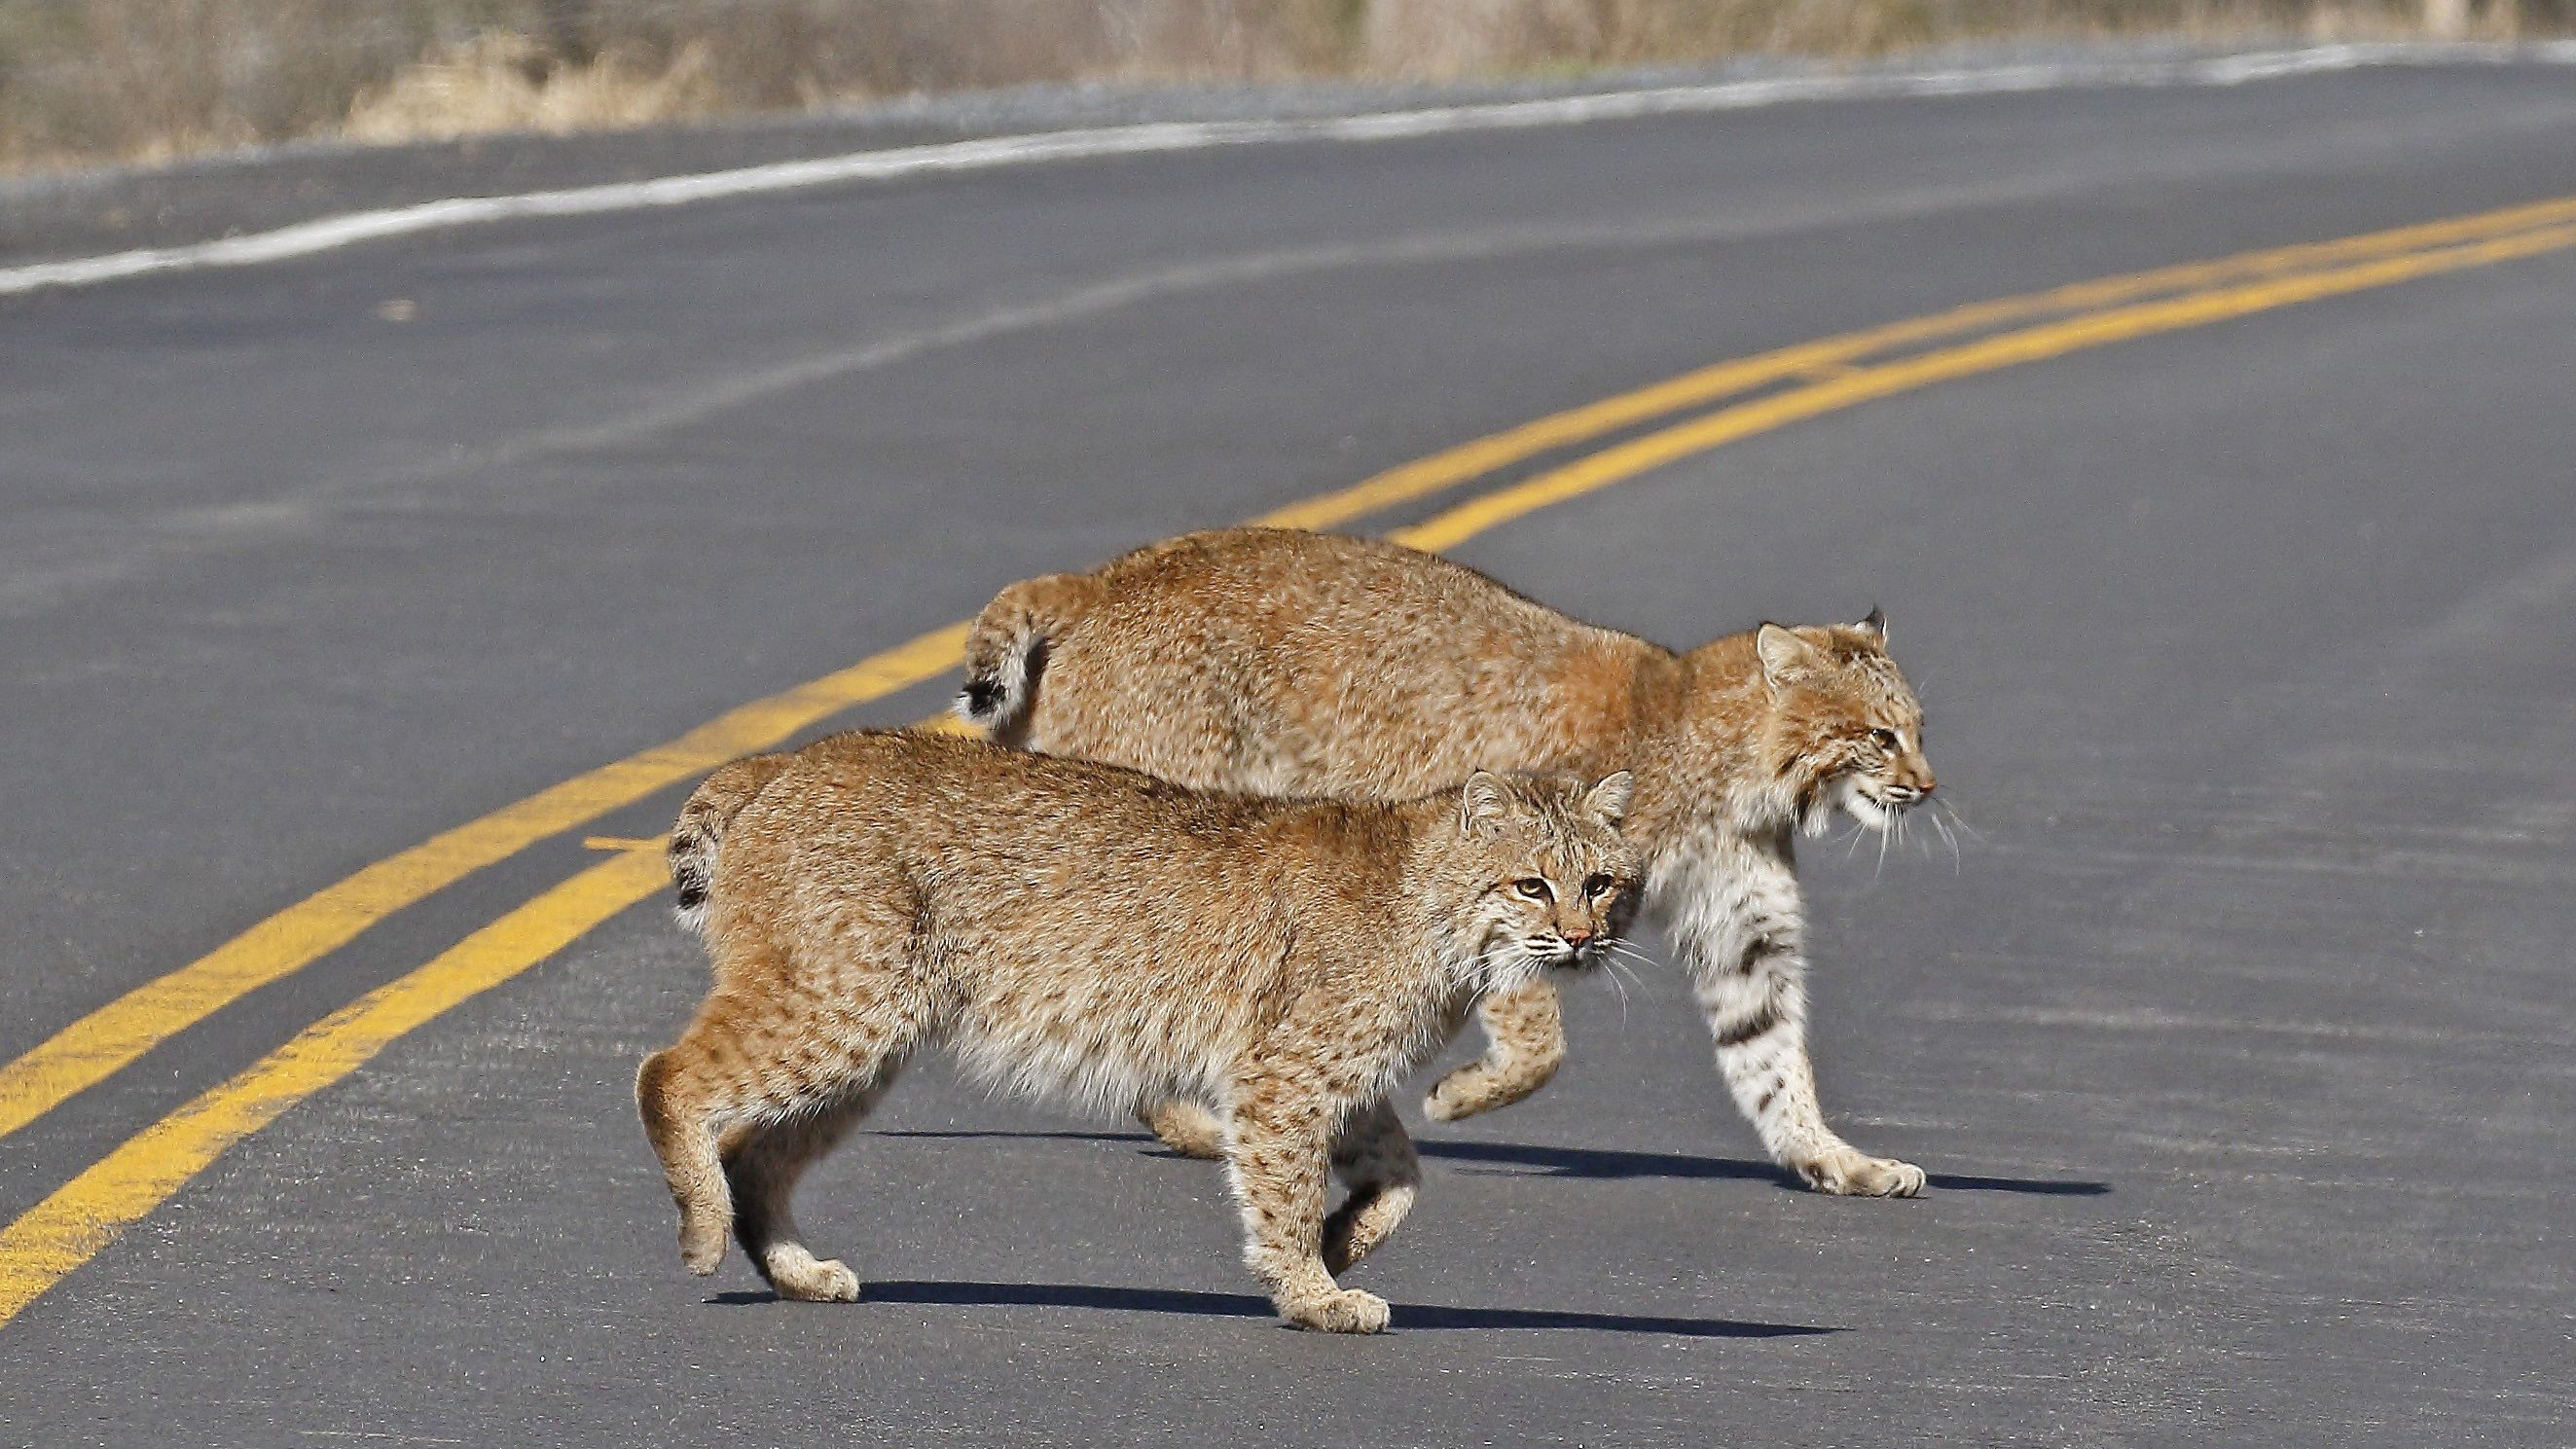 two bobcats crossing a roadway